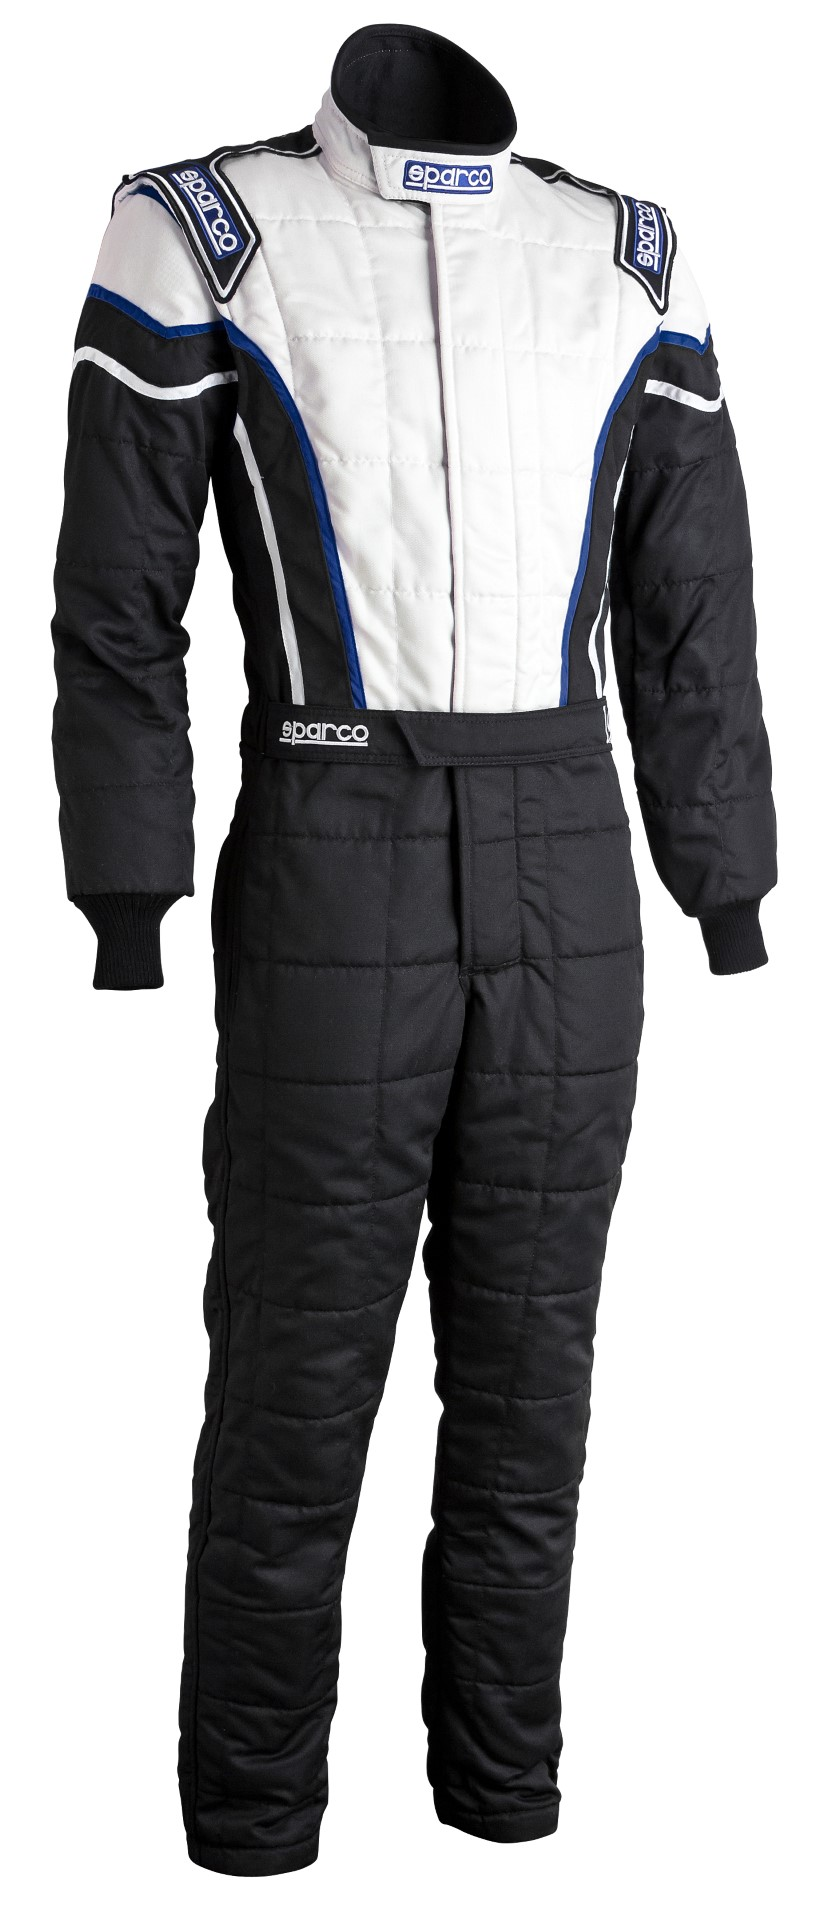 Sparco Racing Suits Sparco Pro Cup x2 Nomex Racing